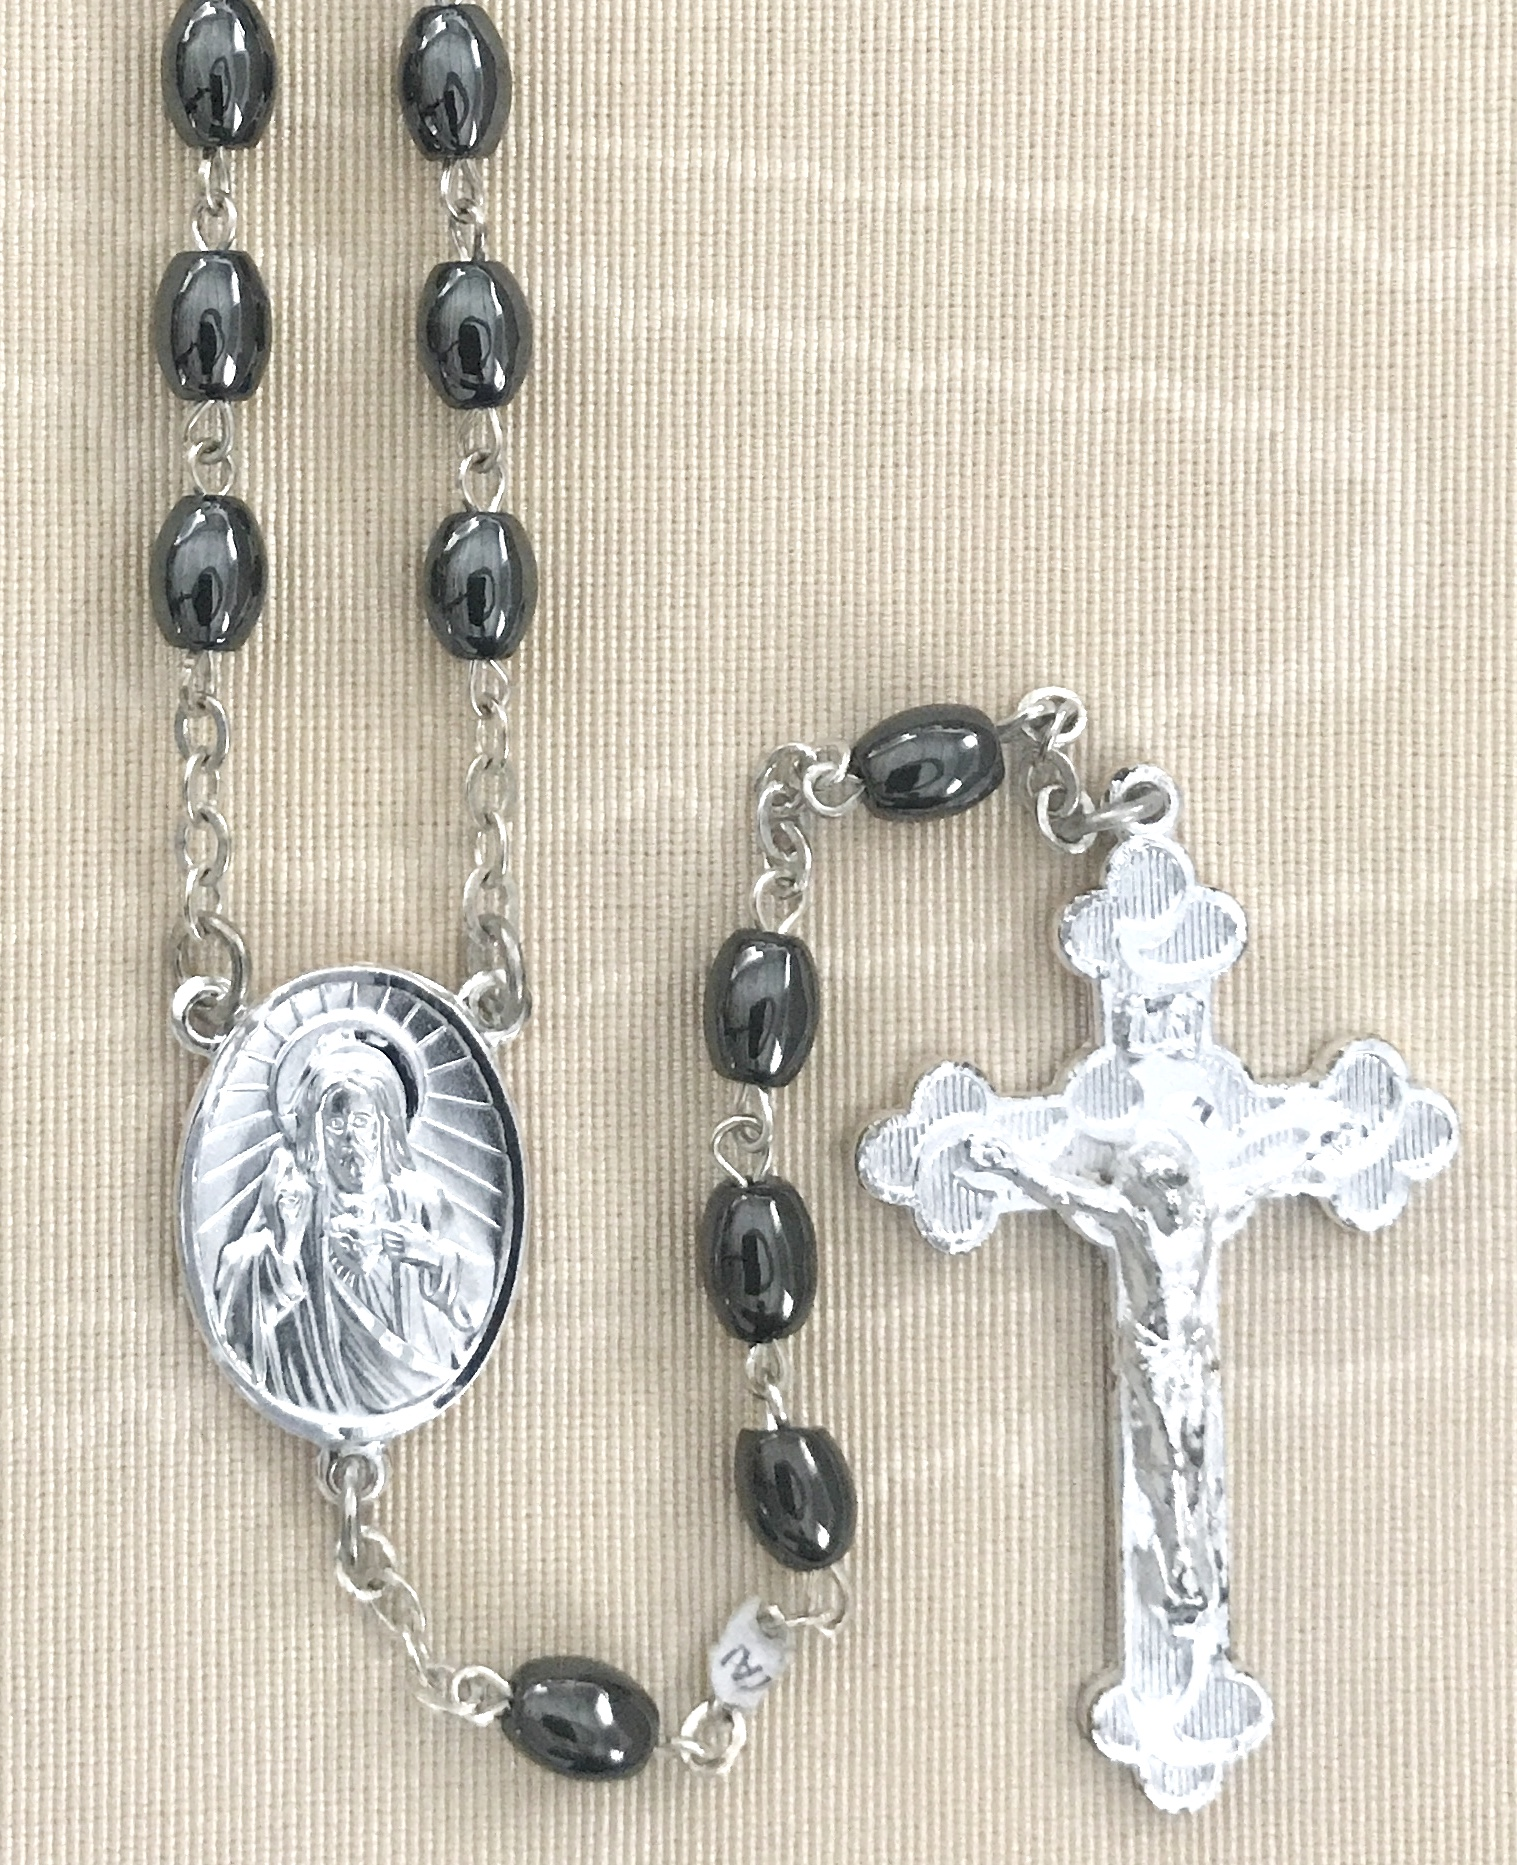 5 X 7MM HEMATITE ROSARY WITH STERLING SILVER PLATED CRUCIFIX AND CENTER GIFT BOXED